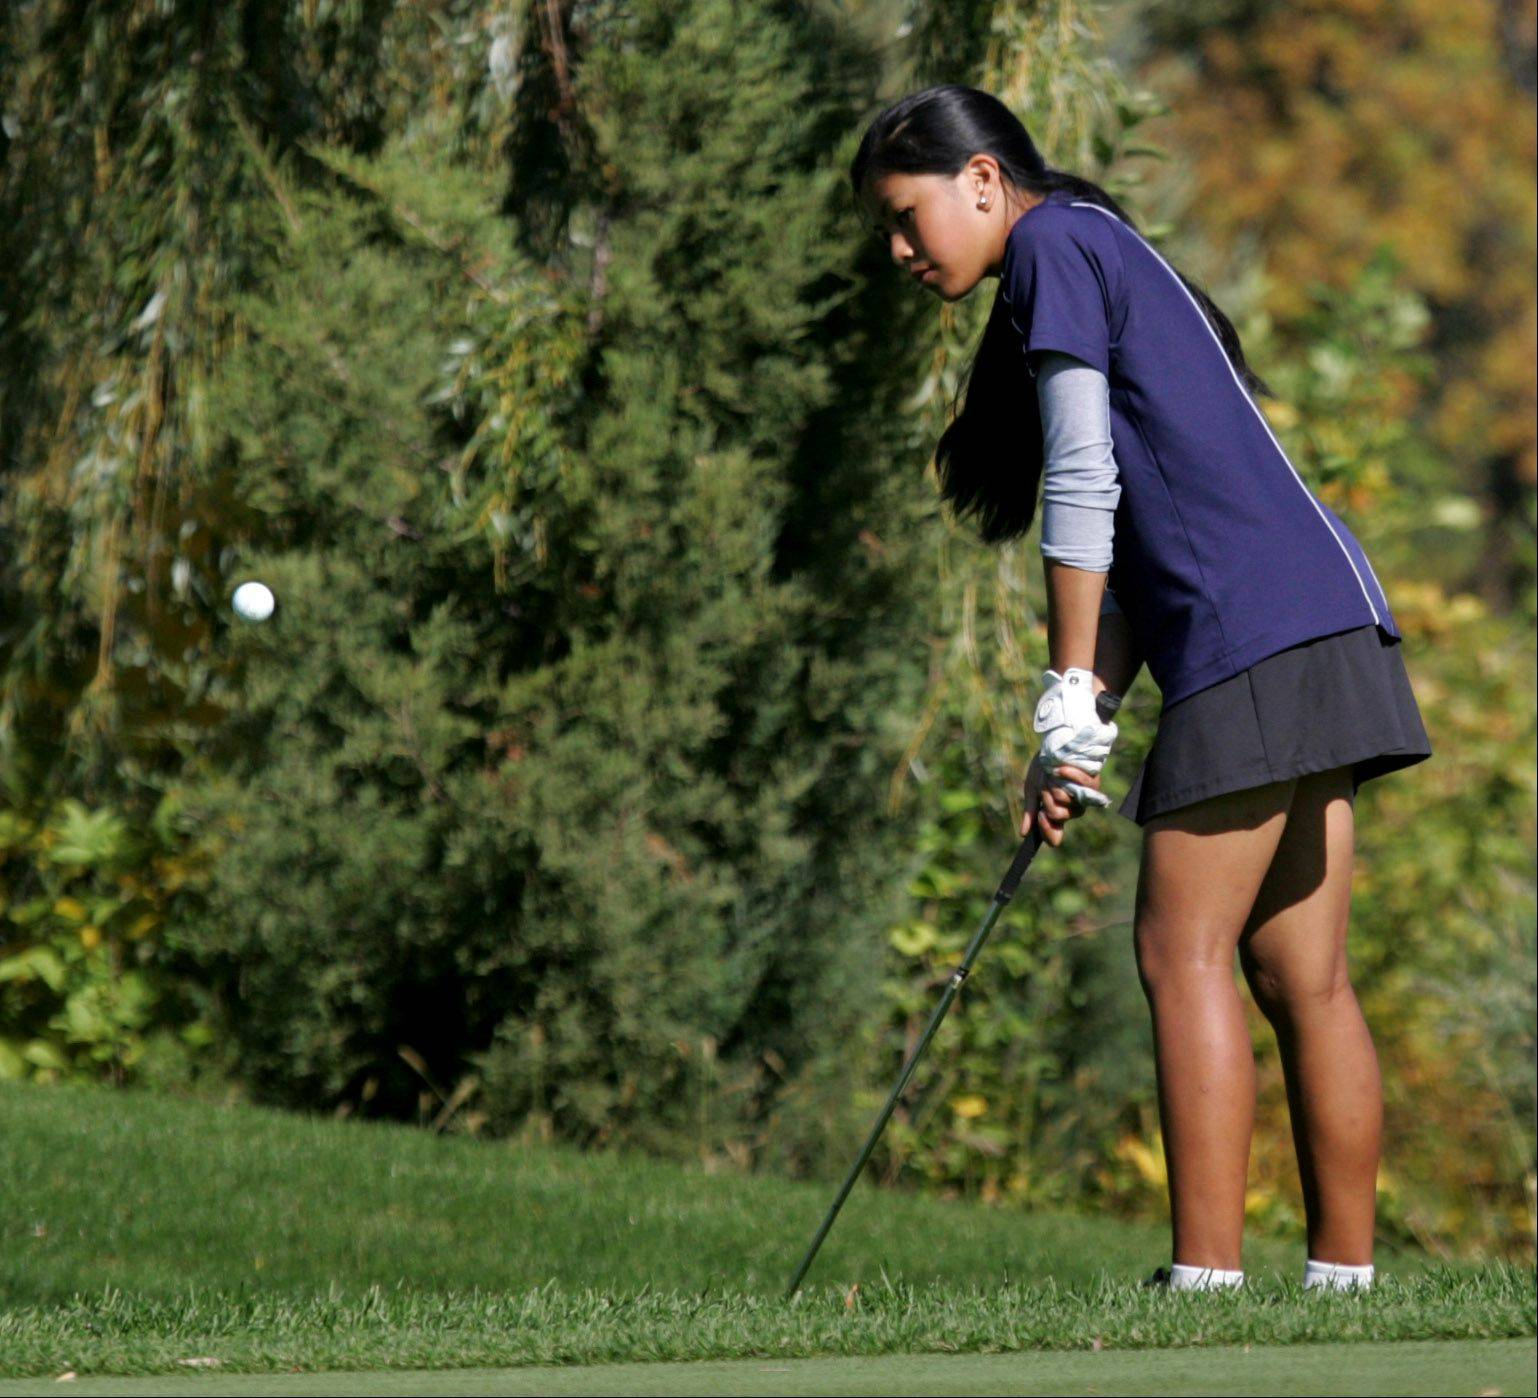 Buffalo Grove golfer Amber Guiao chips onto the green at the 16th hole during the Class 2A girls golf sectional Monday at Buffalo Grove Golf Club.